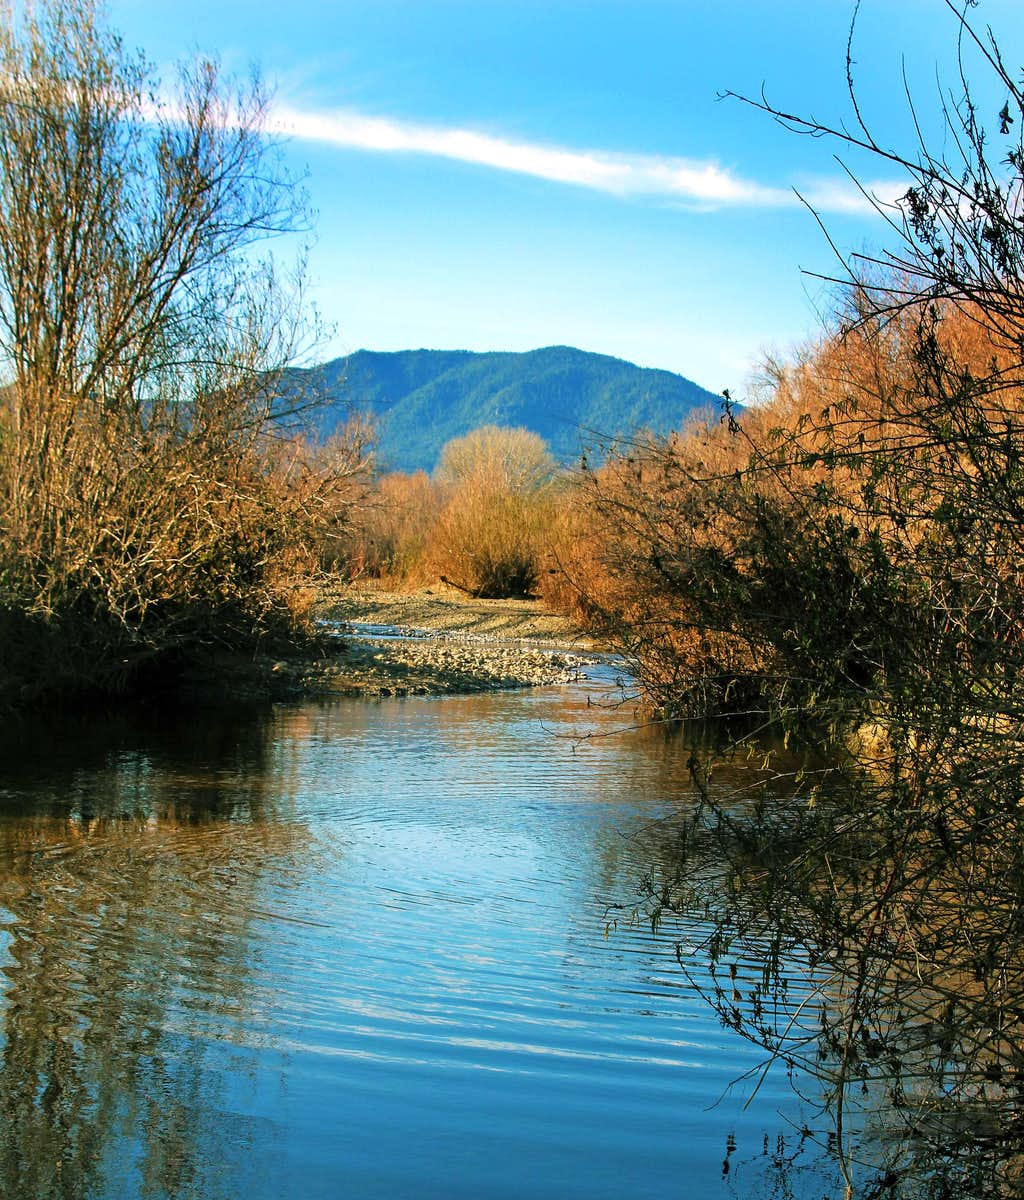 Cobb Mtn. from Putah Creek